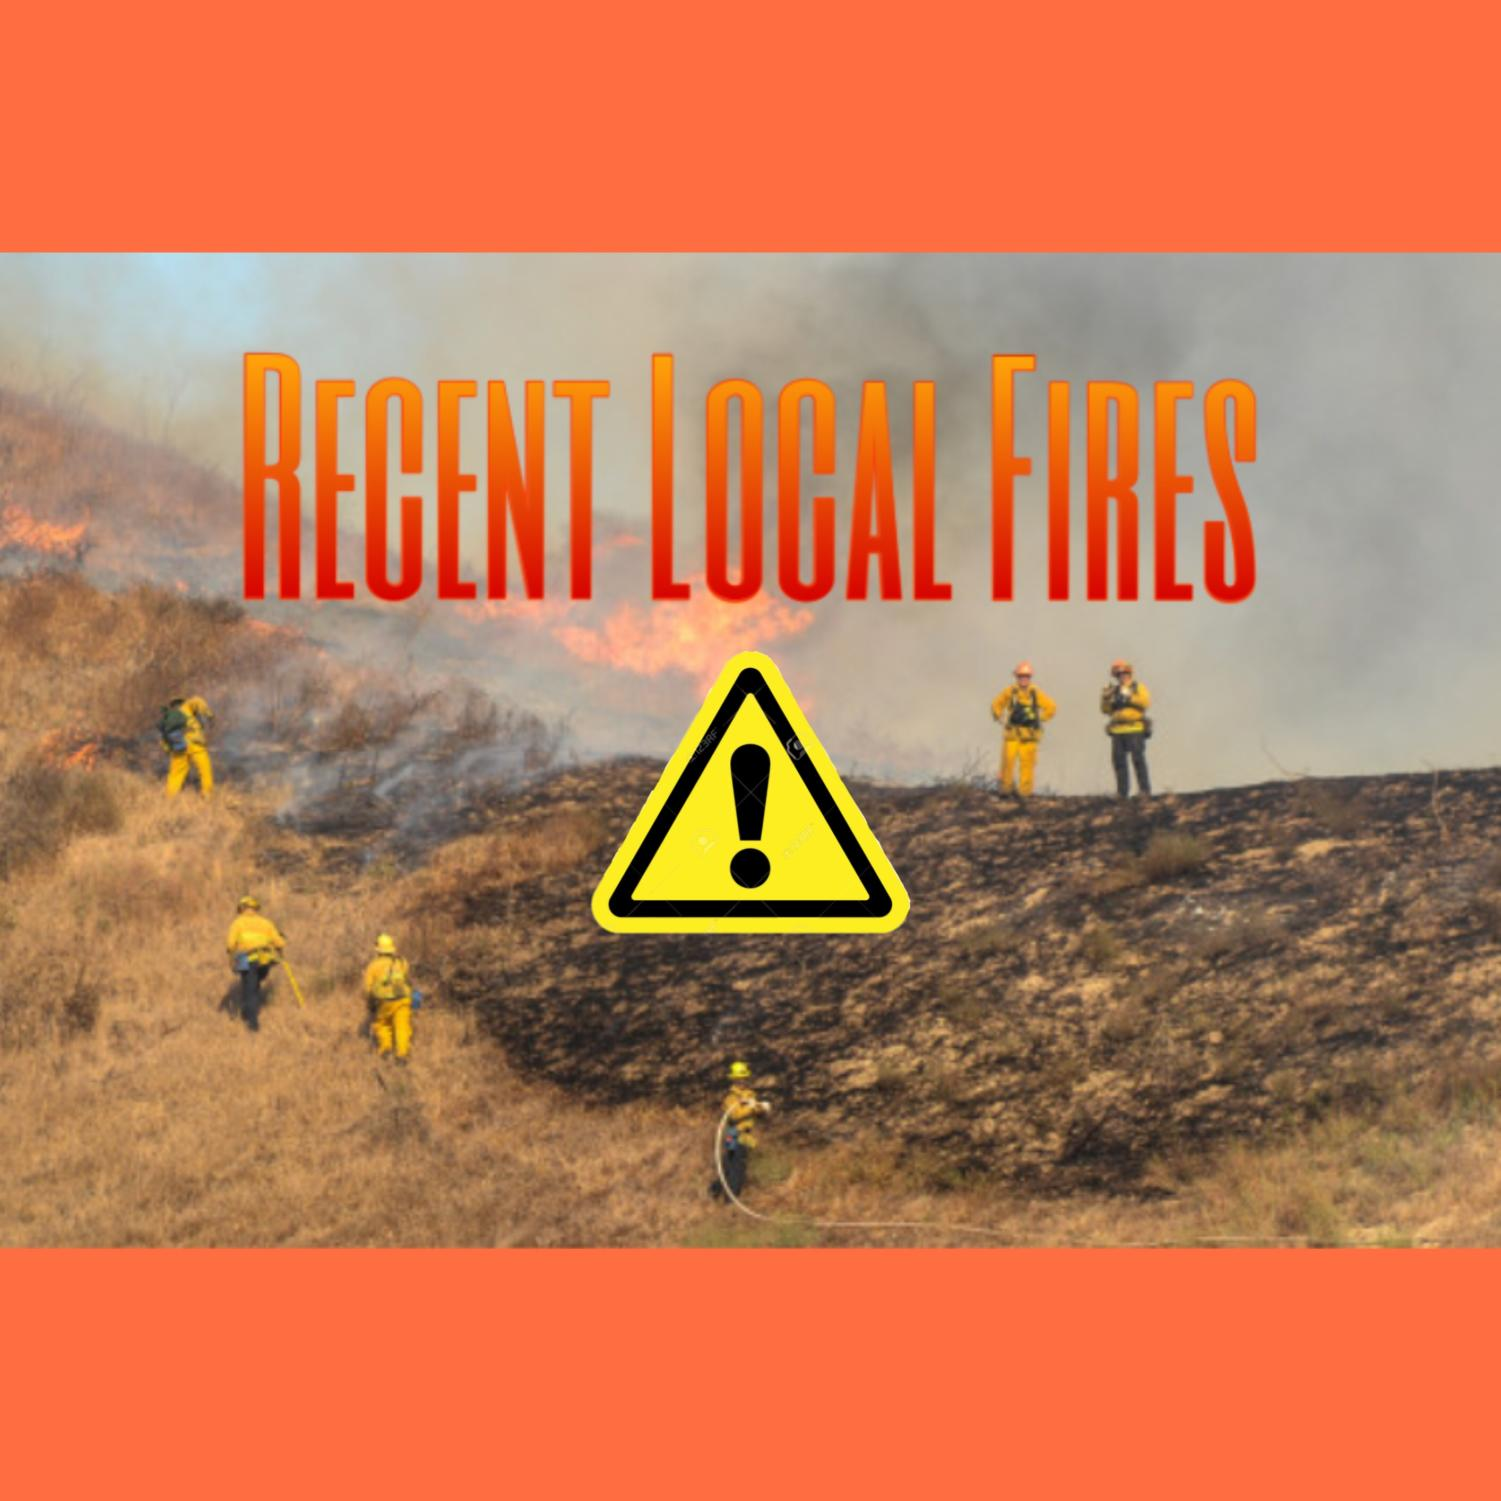 Hand crews move in to battle brush fires throughout California to ensure no lives or homes are threatened.